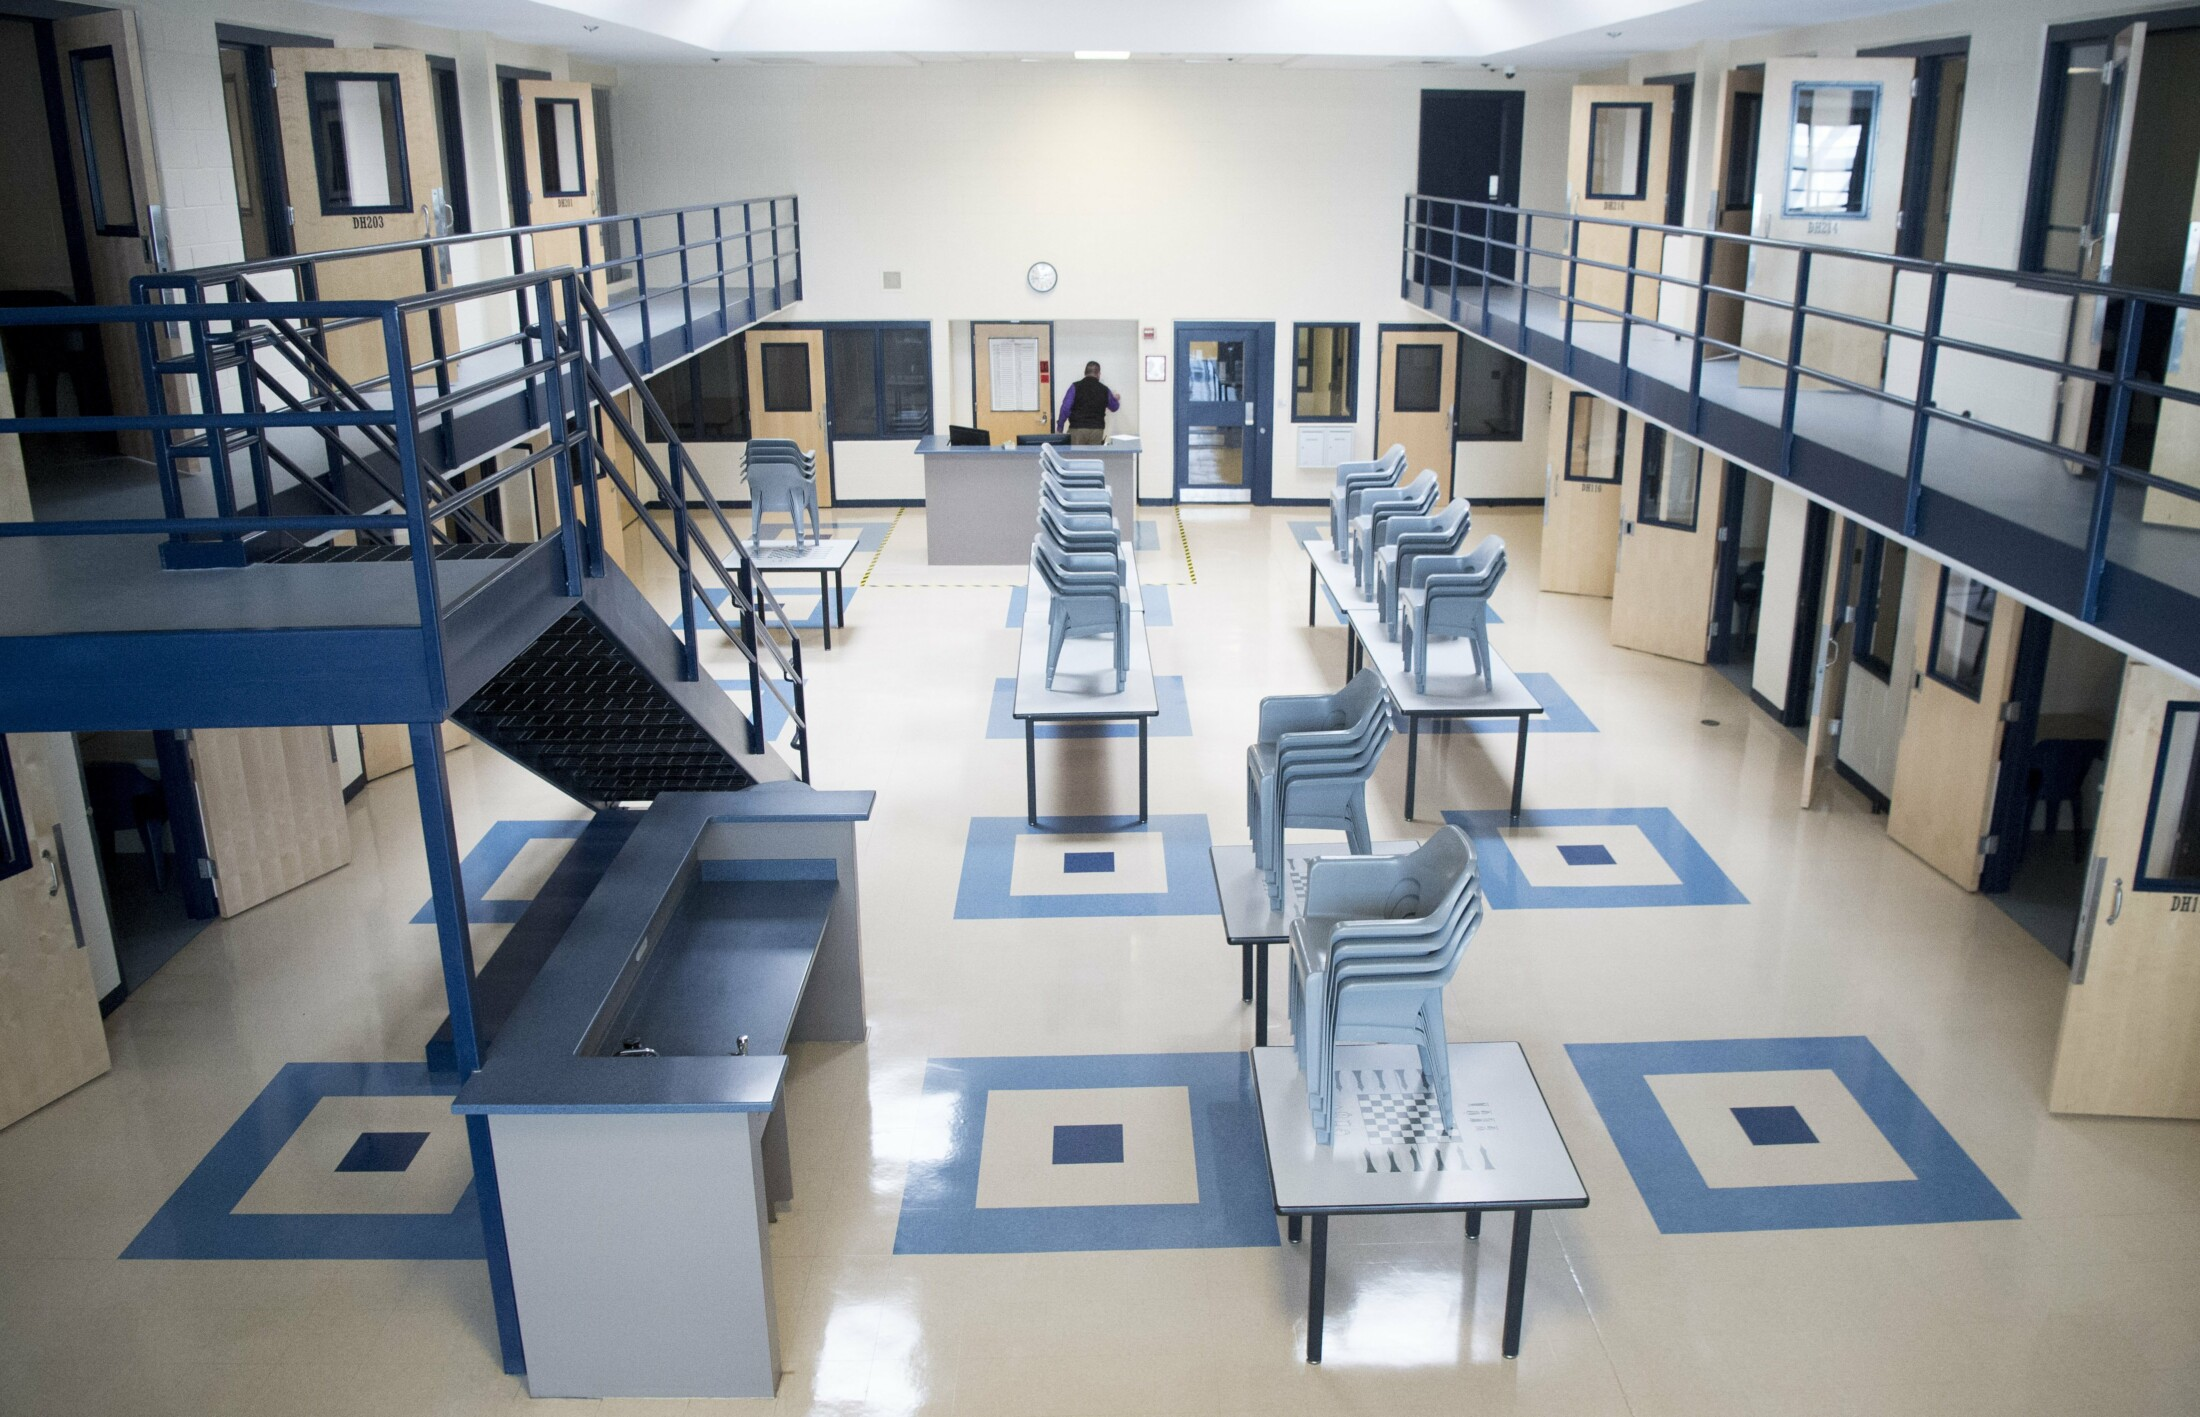 Somerset county jail